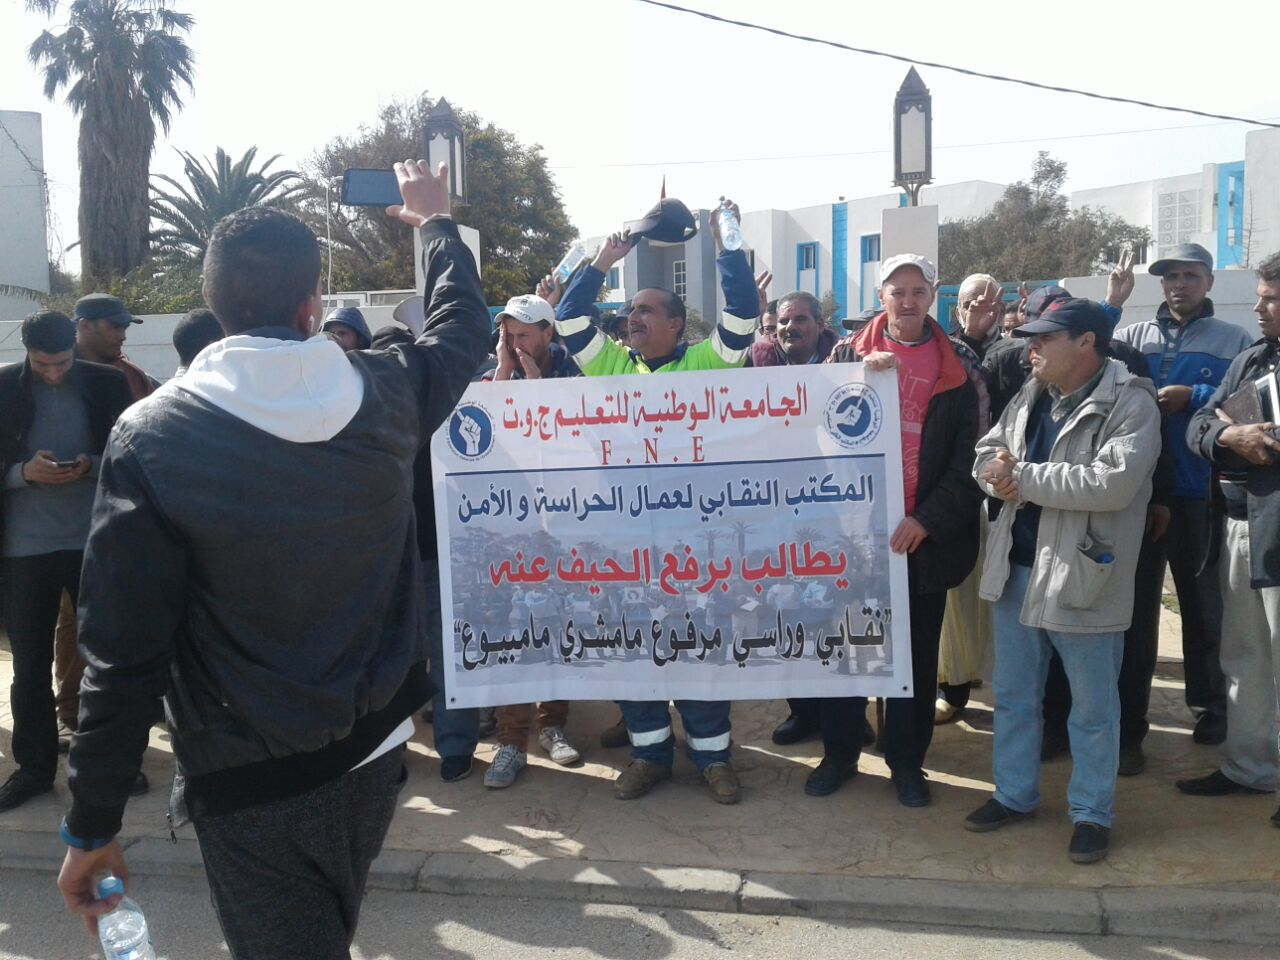 fne-securite-netoyage-madiaq-fnideq-protestation-24-2-2017 (3)